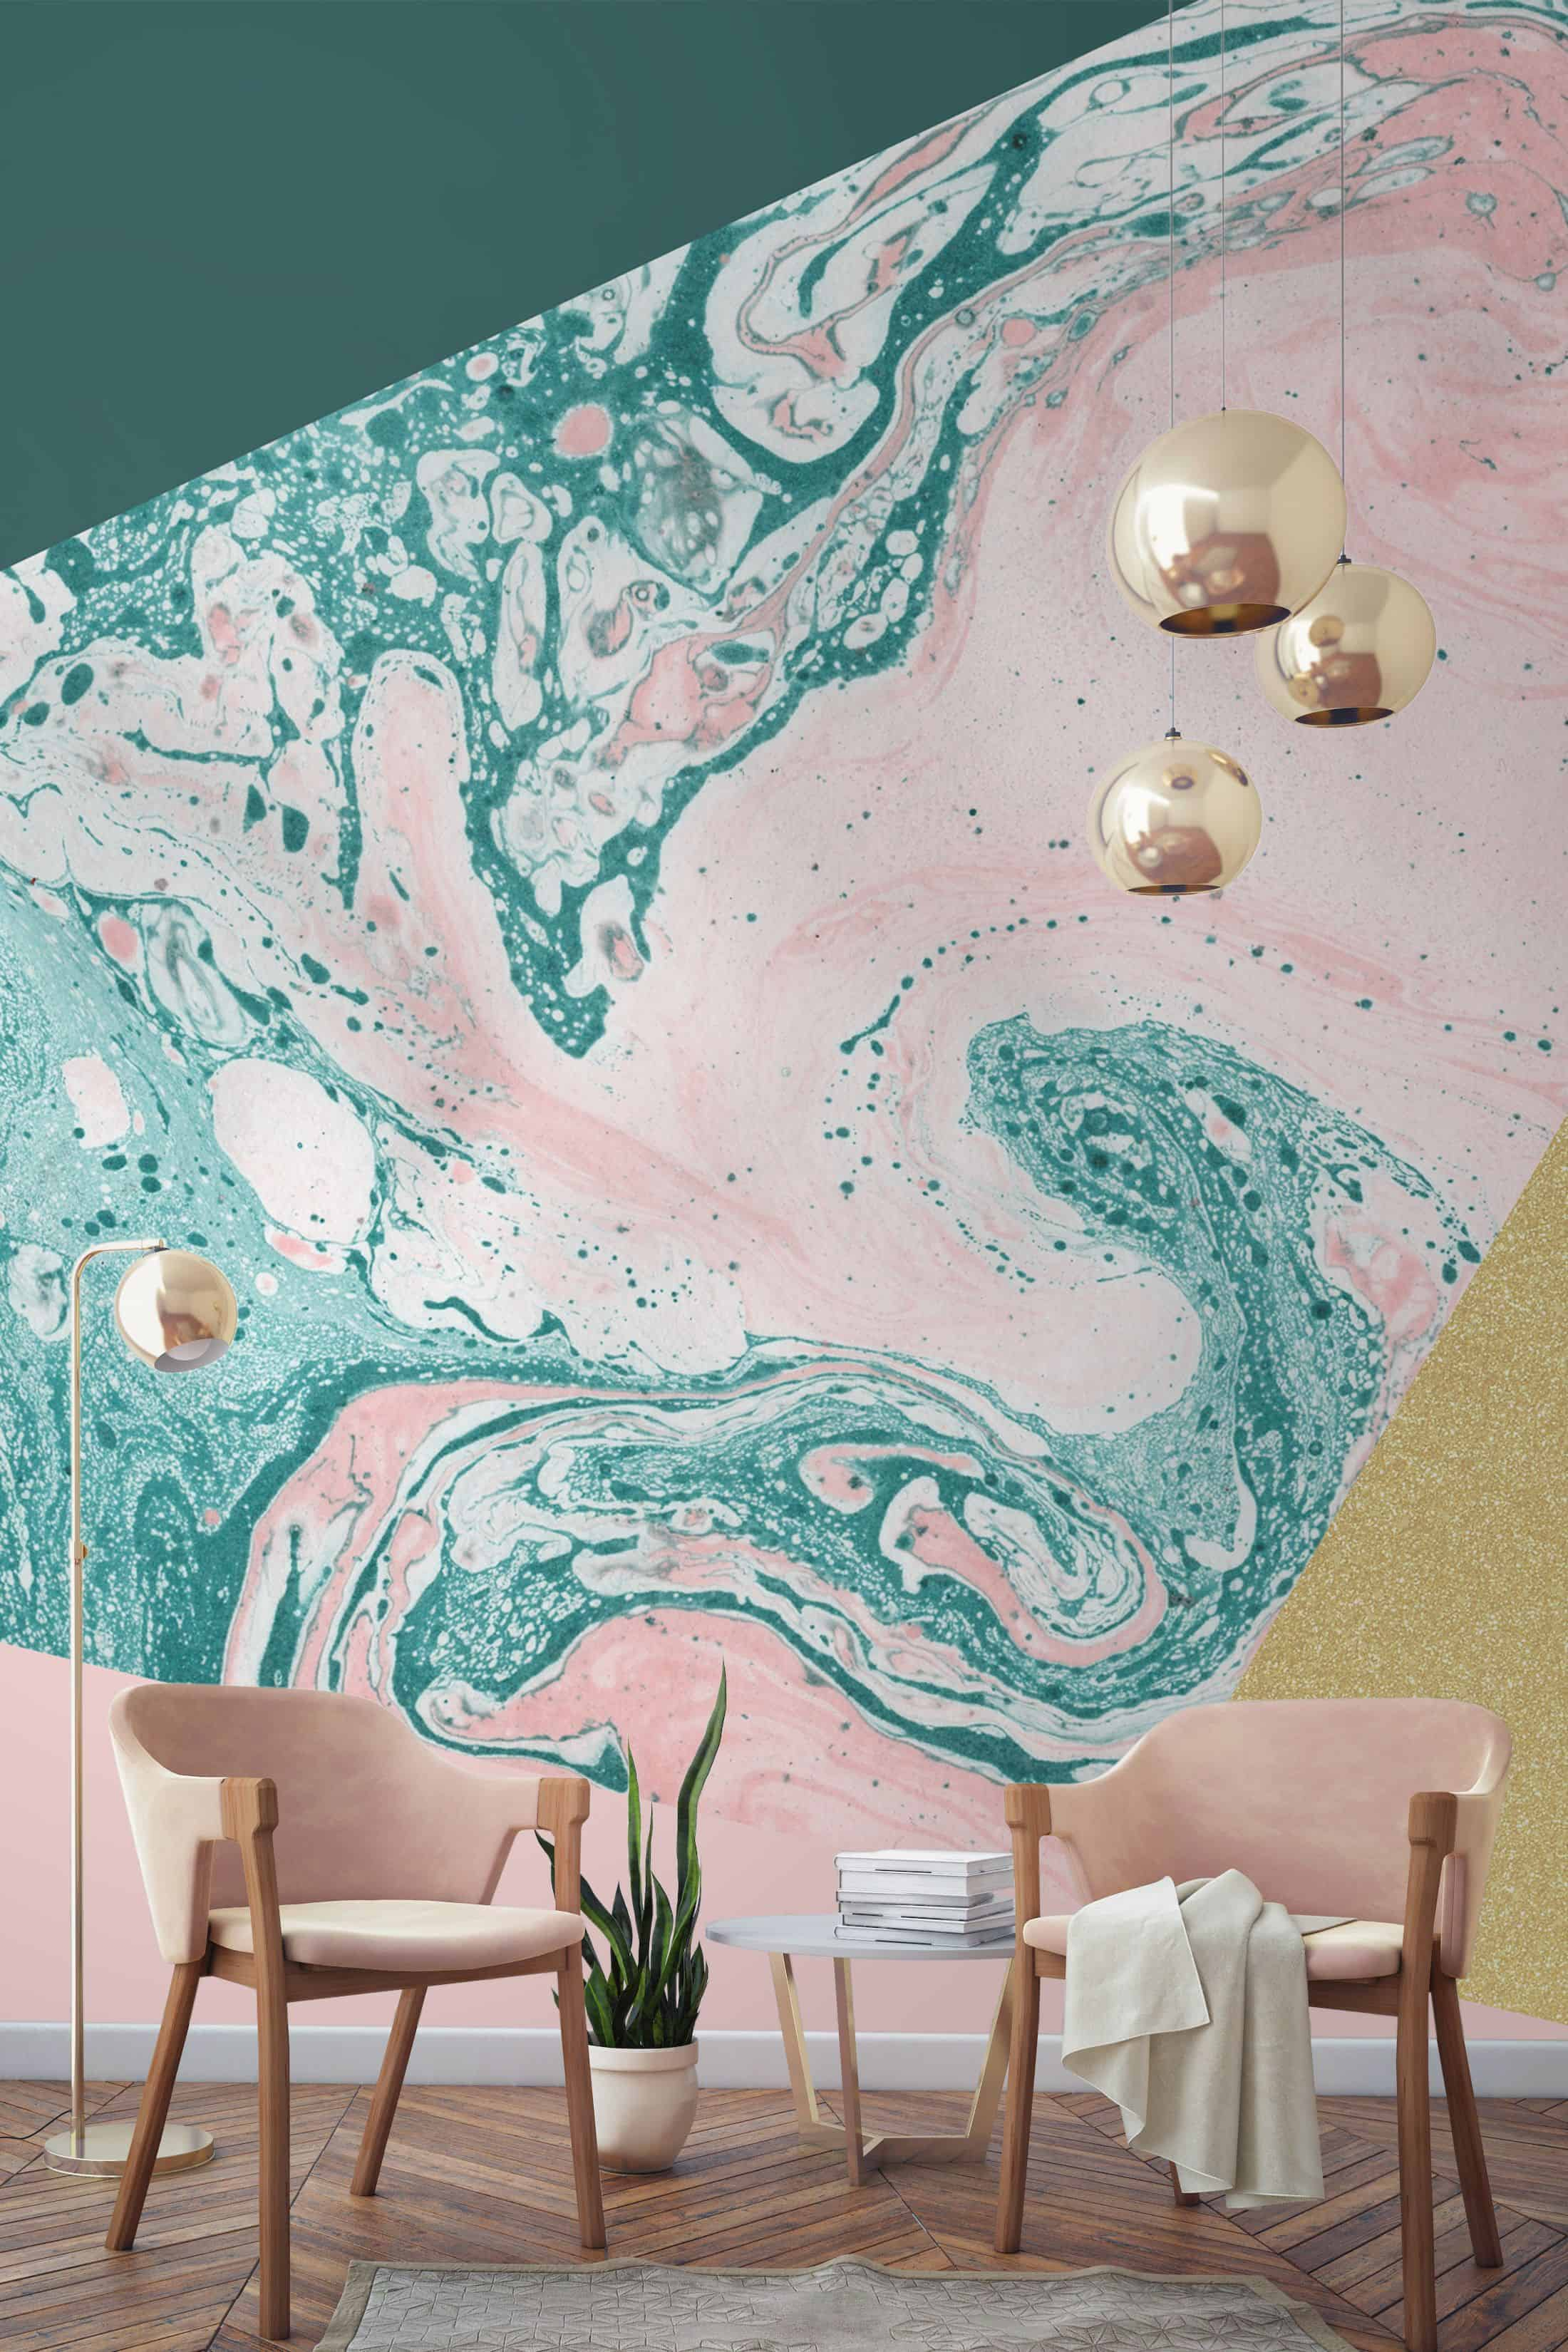 Add a few pieces that match the wallpaper for the ultimate contrast.